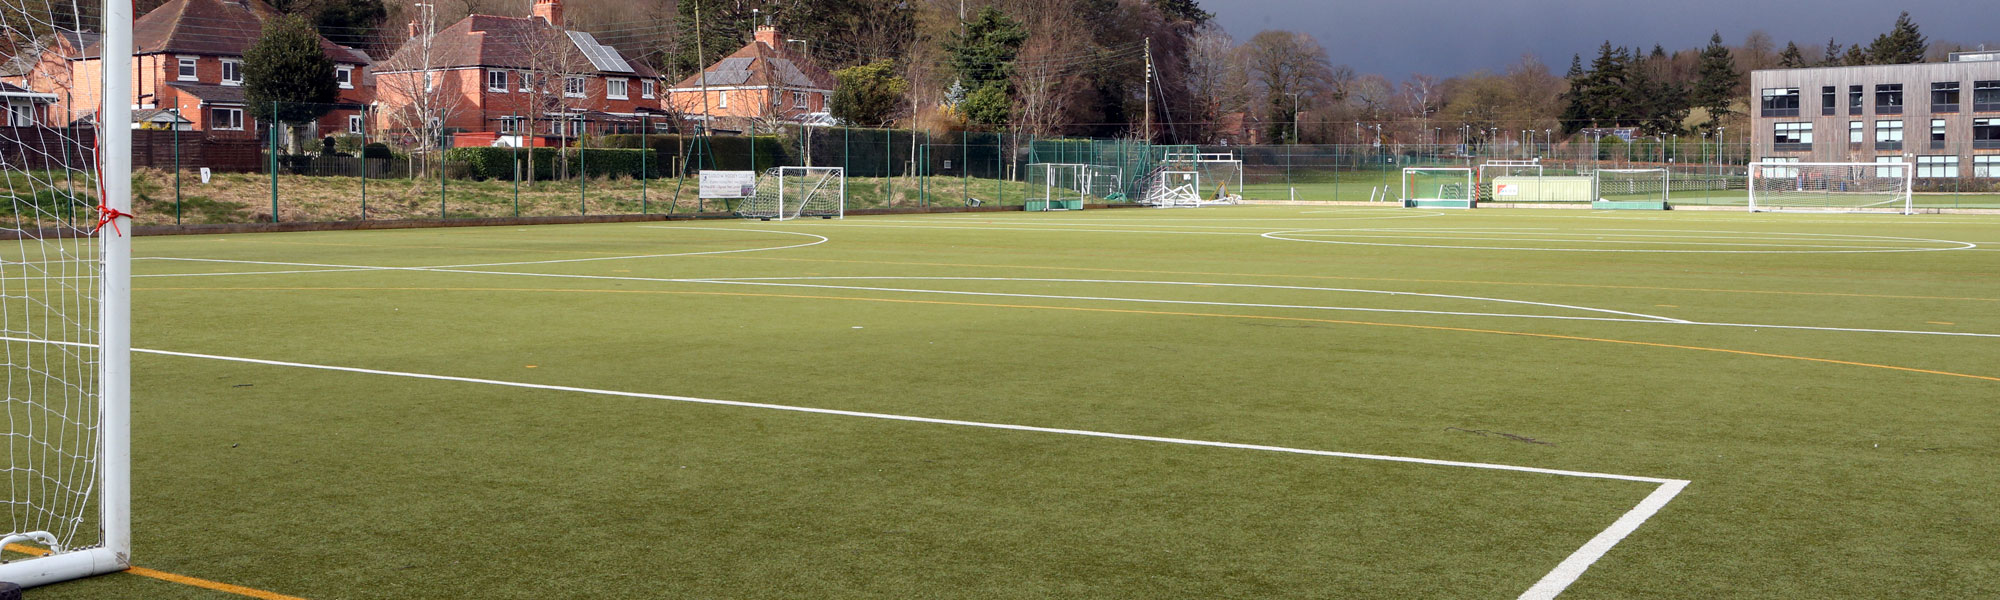 Football pitch at William Brookes School